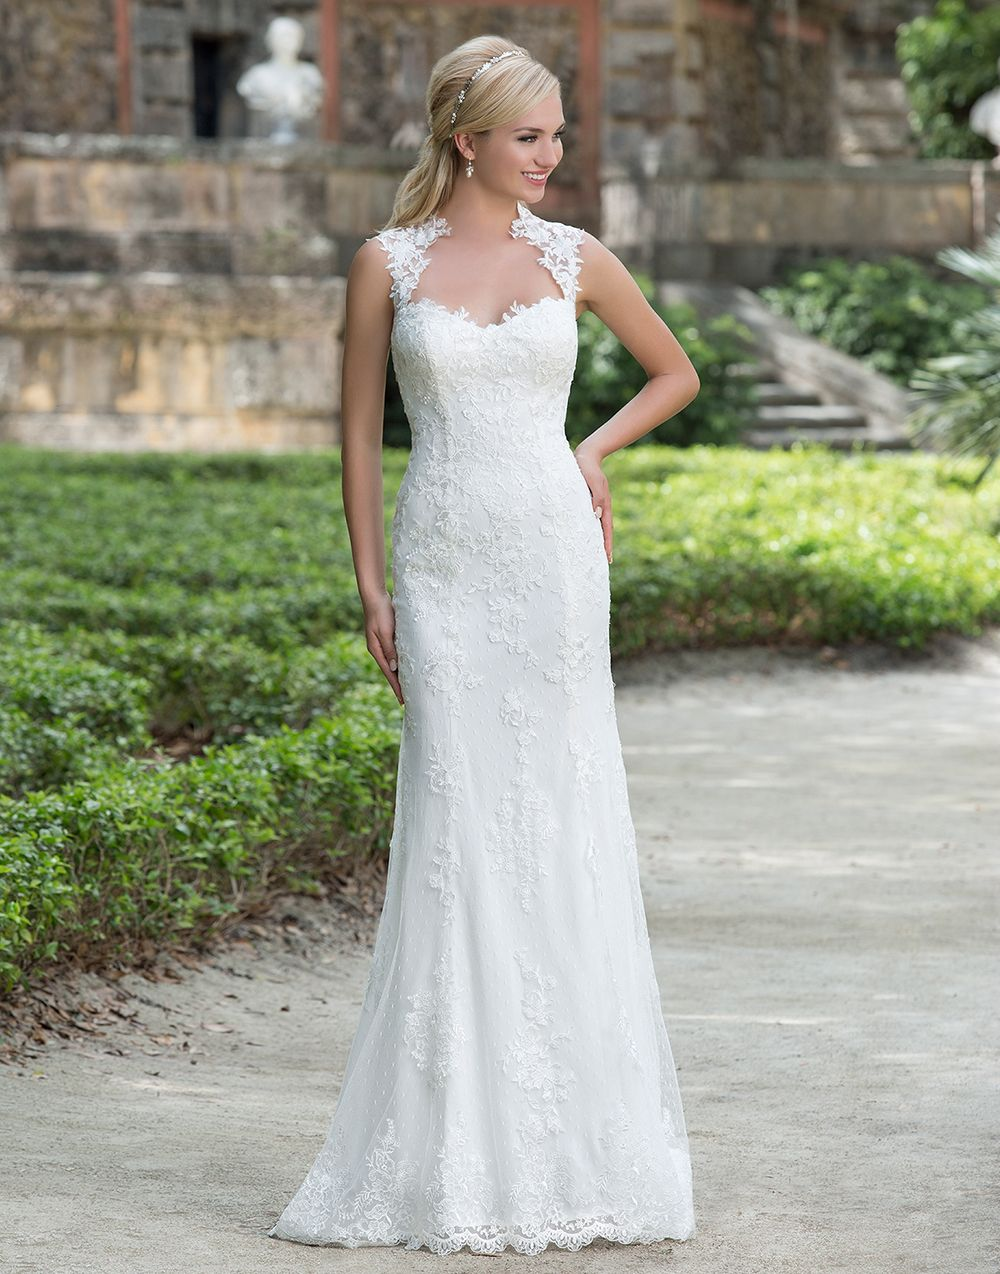 feeedc22d26f Sincerity wedding dress style 3885 A Queen Anne neckline accents this point  d'esprit and intricate lace straight gown. Finished hem lace and stretch  Jersey ...